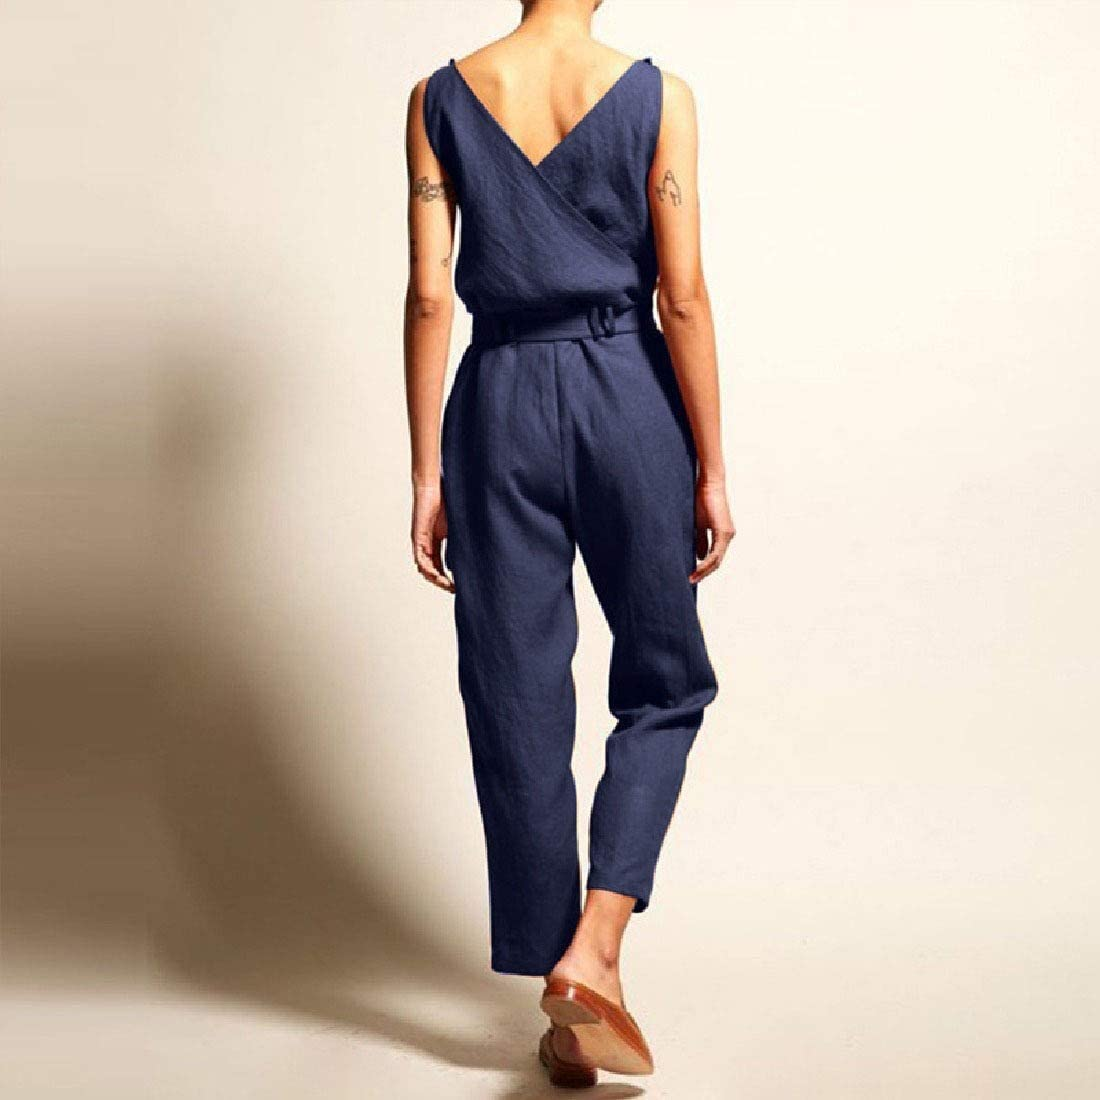 Comaba Womens Summer Belted Sleeveless V-Neck High-Waisted Jumpsuits Romper